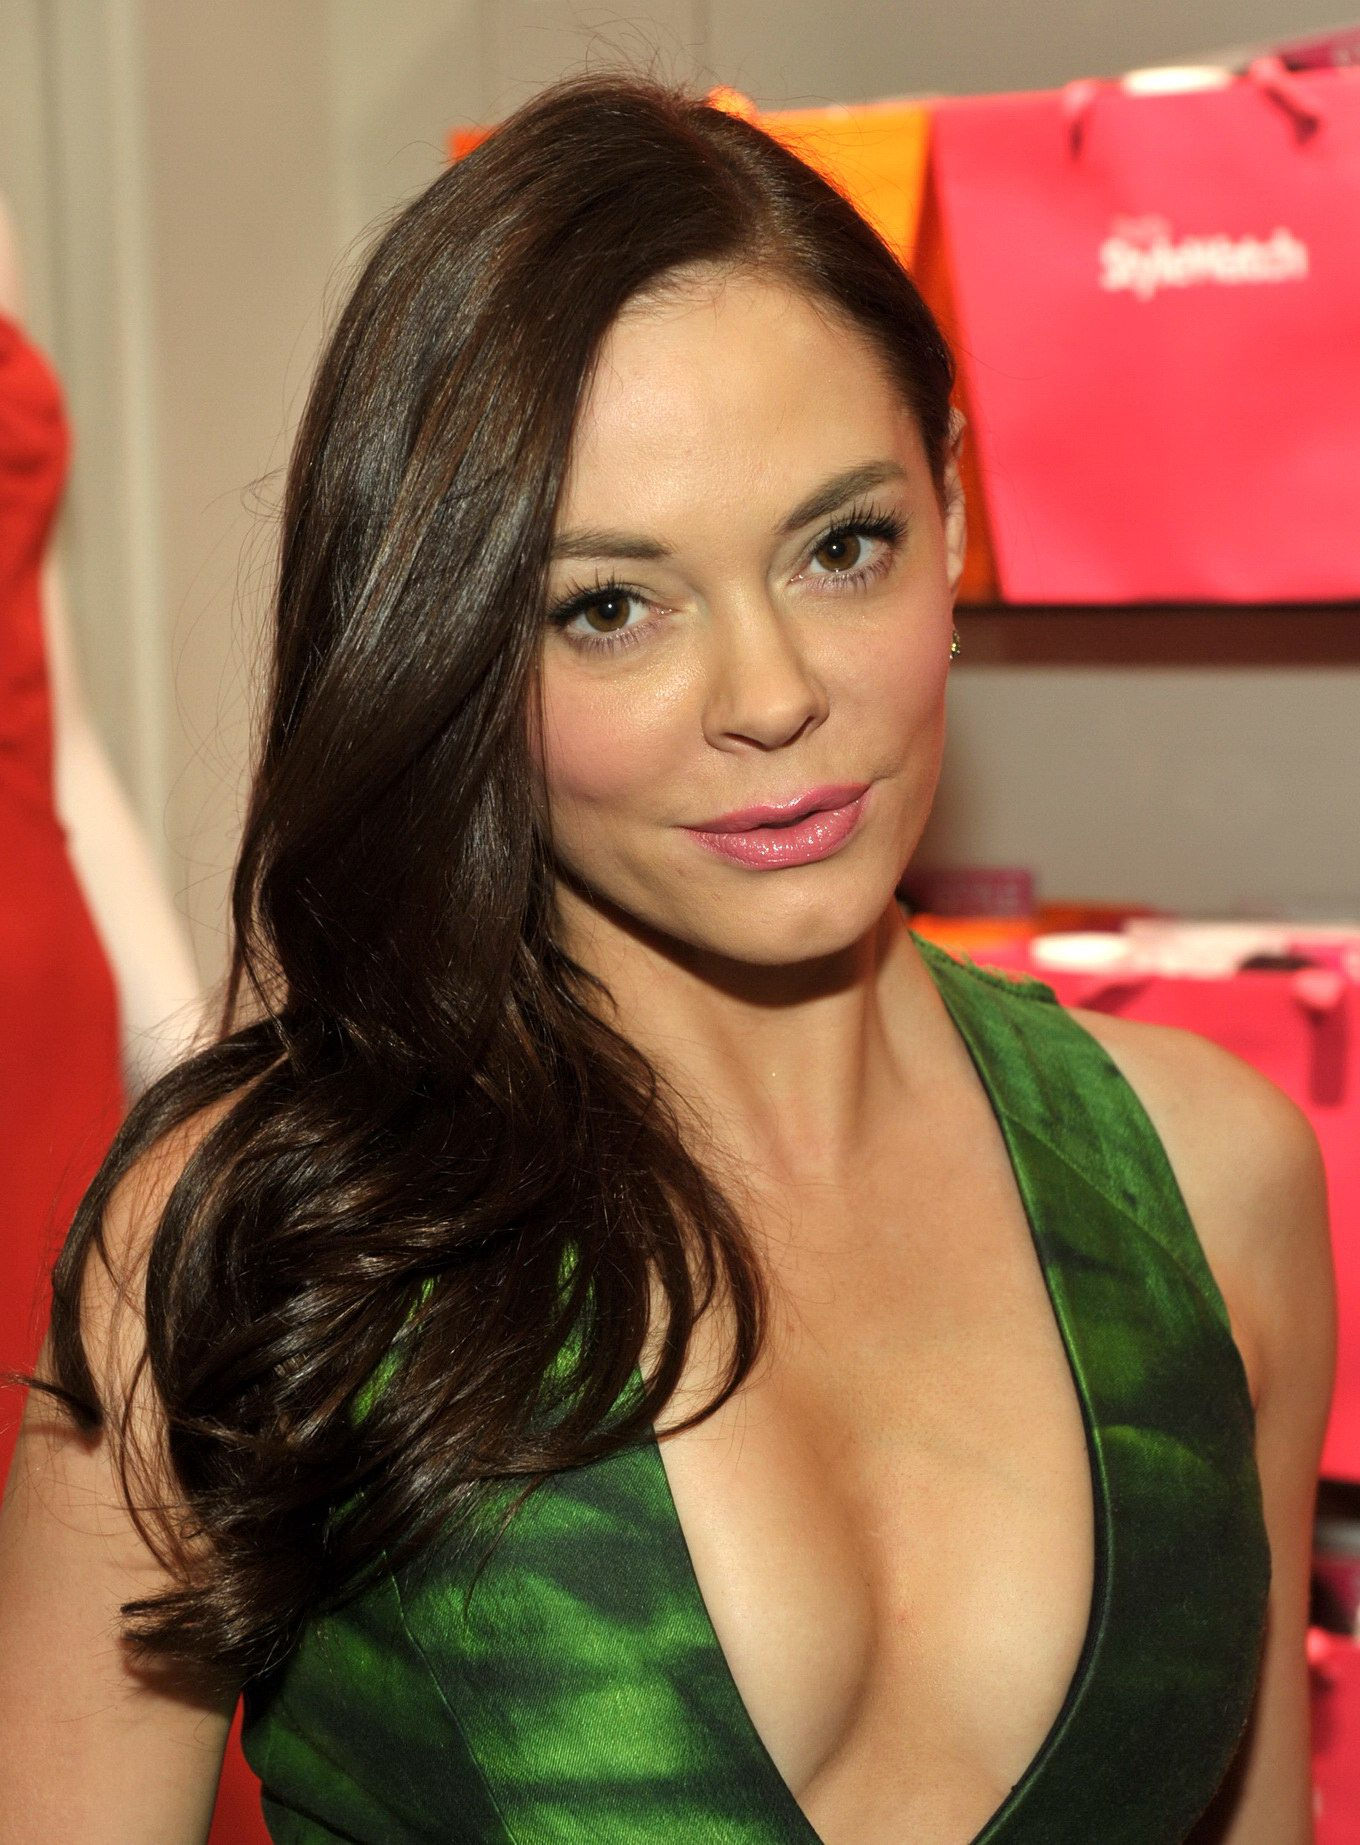 Rose Mcgowan Showing Huge Cleavage Wearing Wide Open Green